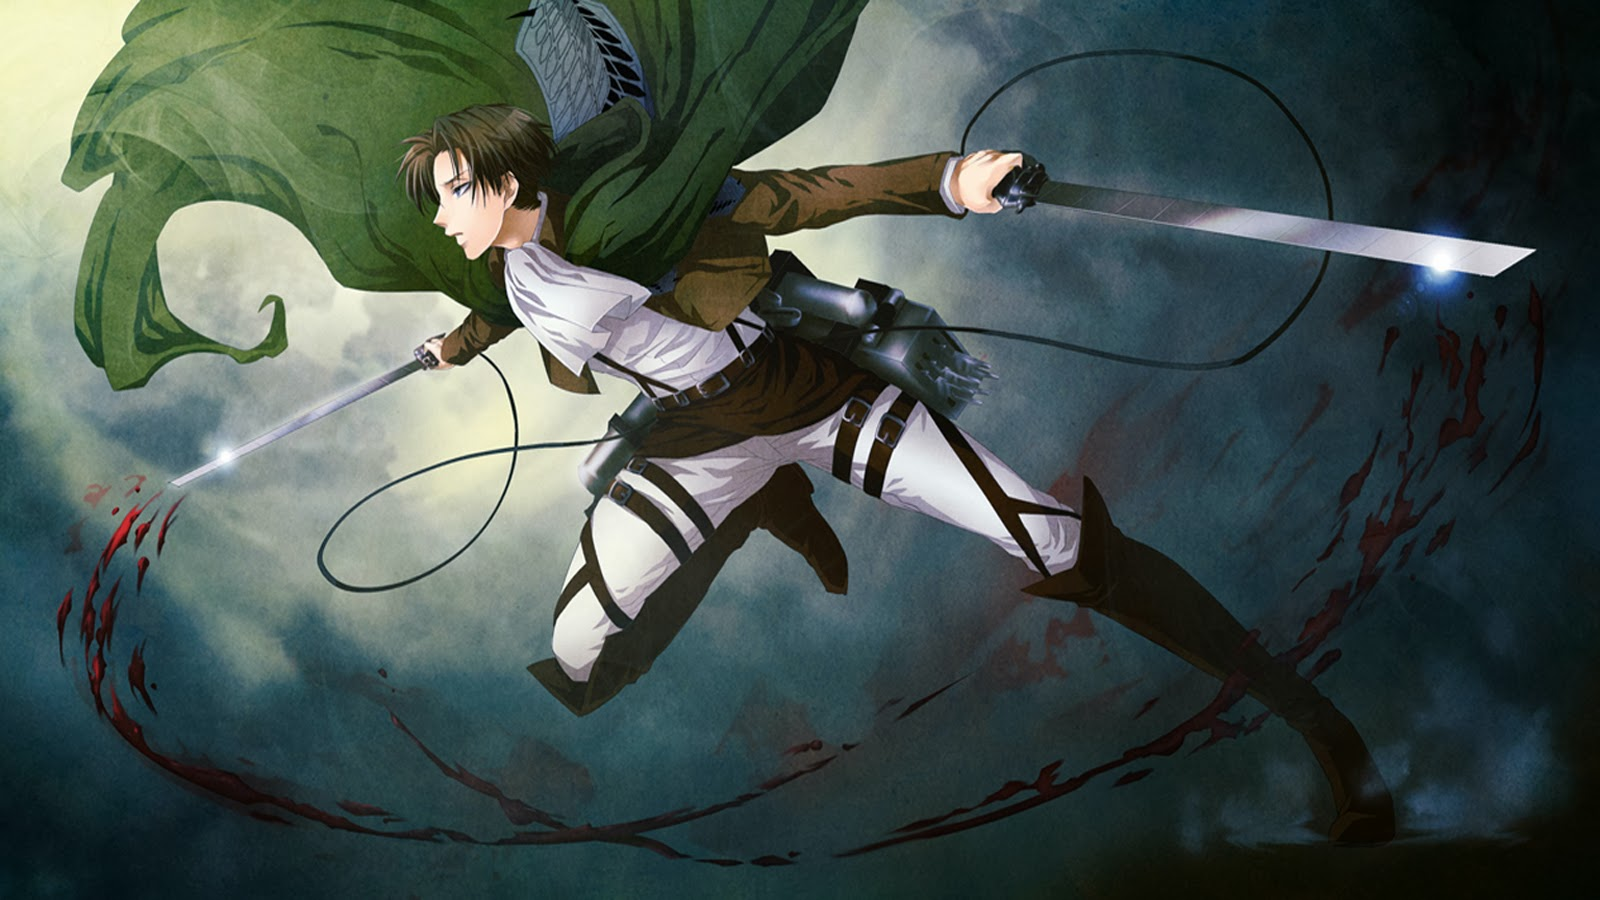 Free Download Attack Levi Attack Wallpaper Levis Levi Ackerman Shingeki Anime 1600x900 For Your Desktop Mobile Tablet Explore 50 Levi Wallpapers Aot Levi Wallpaper Captain Levi Wallpaper Eren And Levi Wallpaper